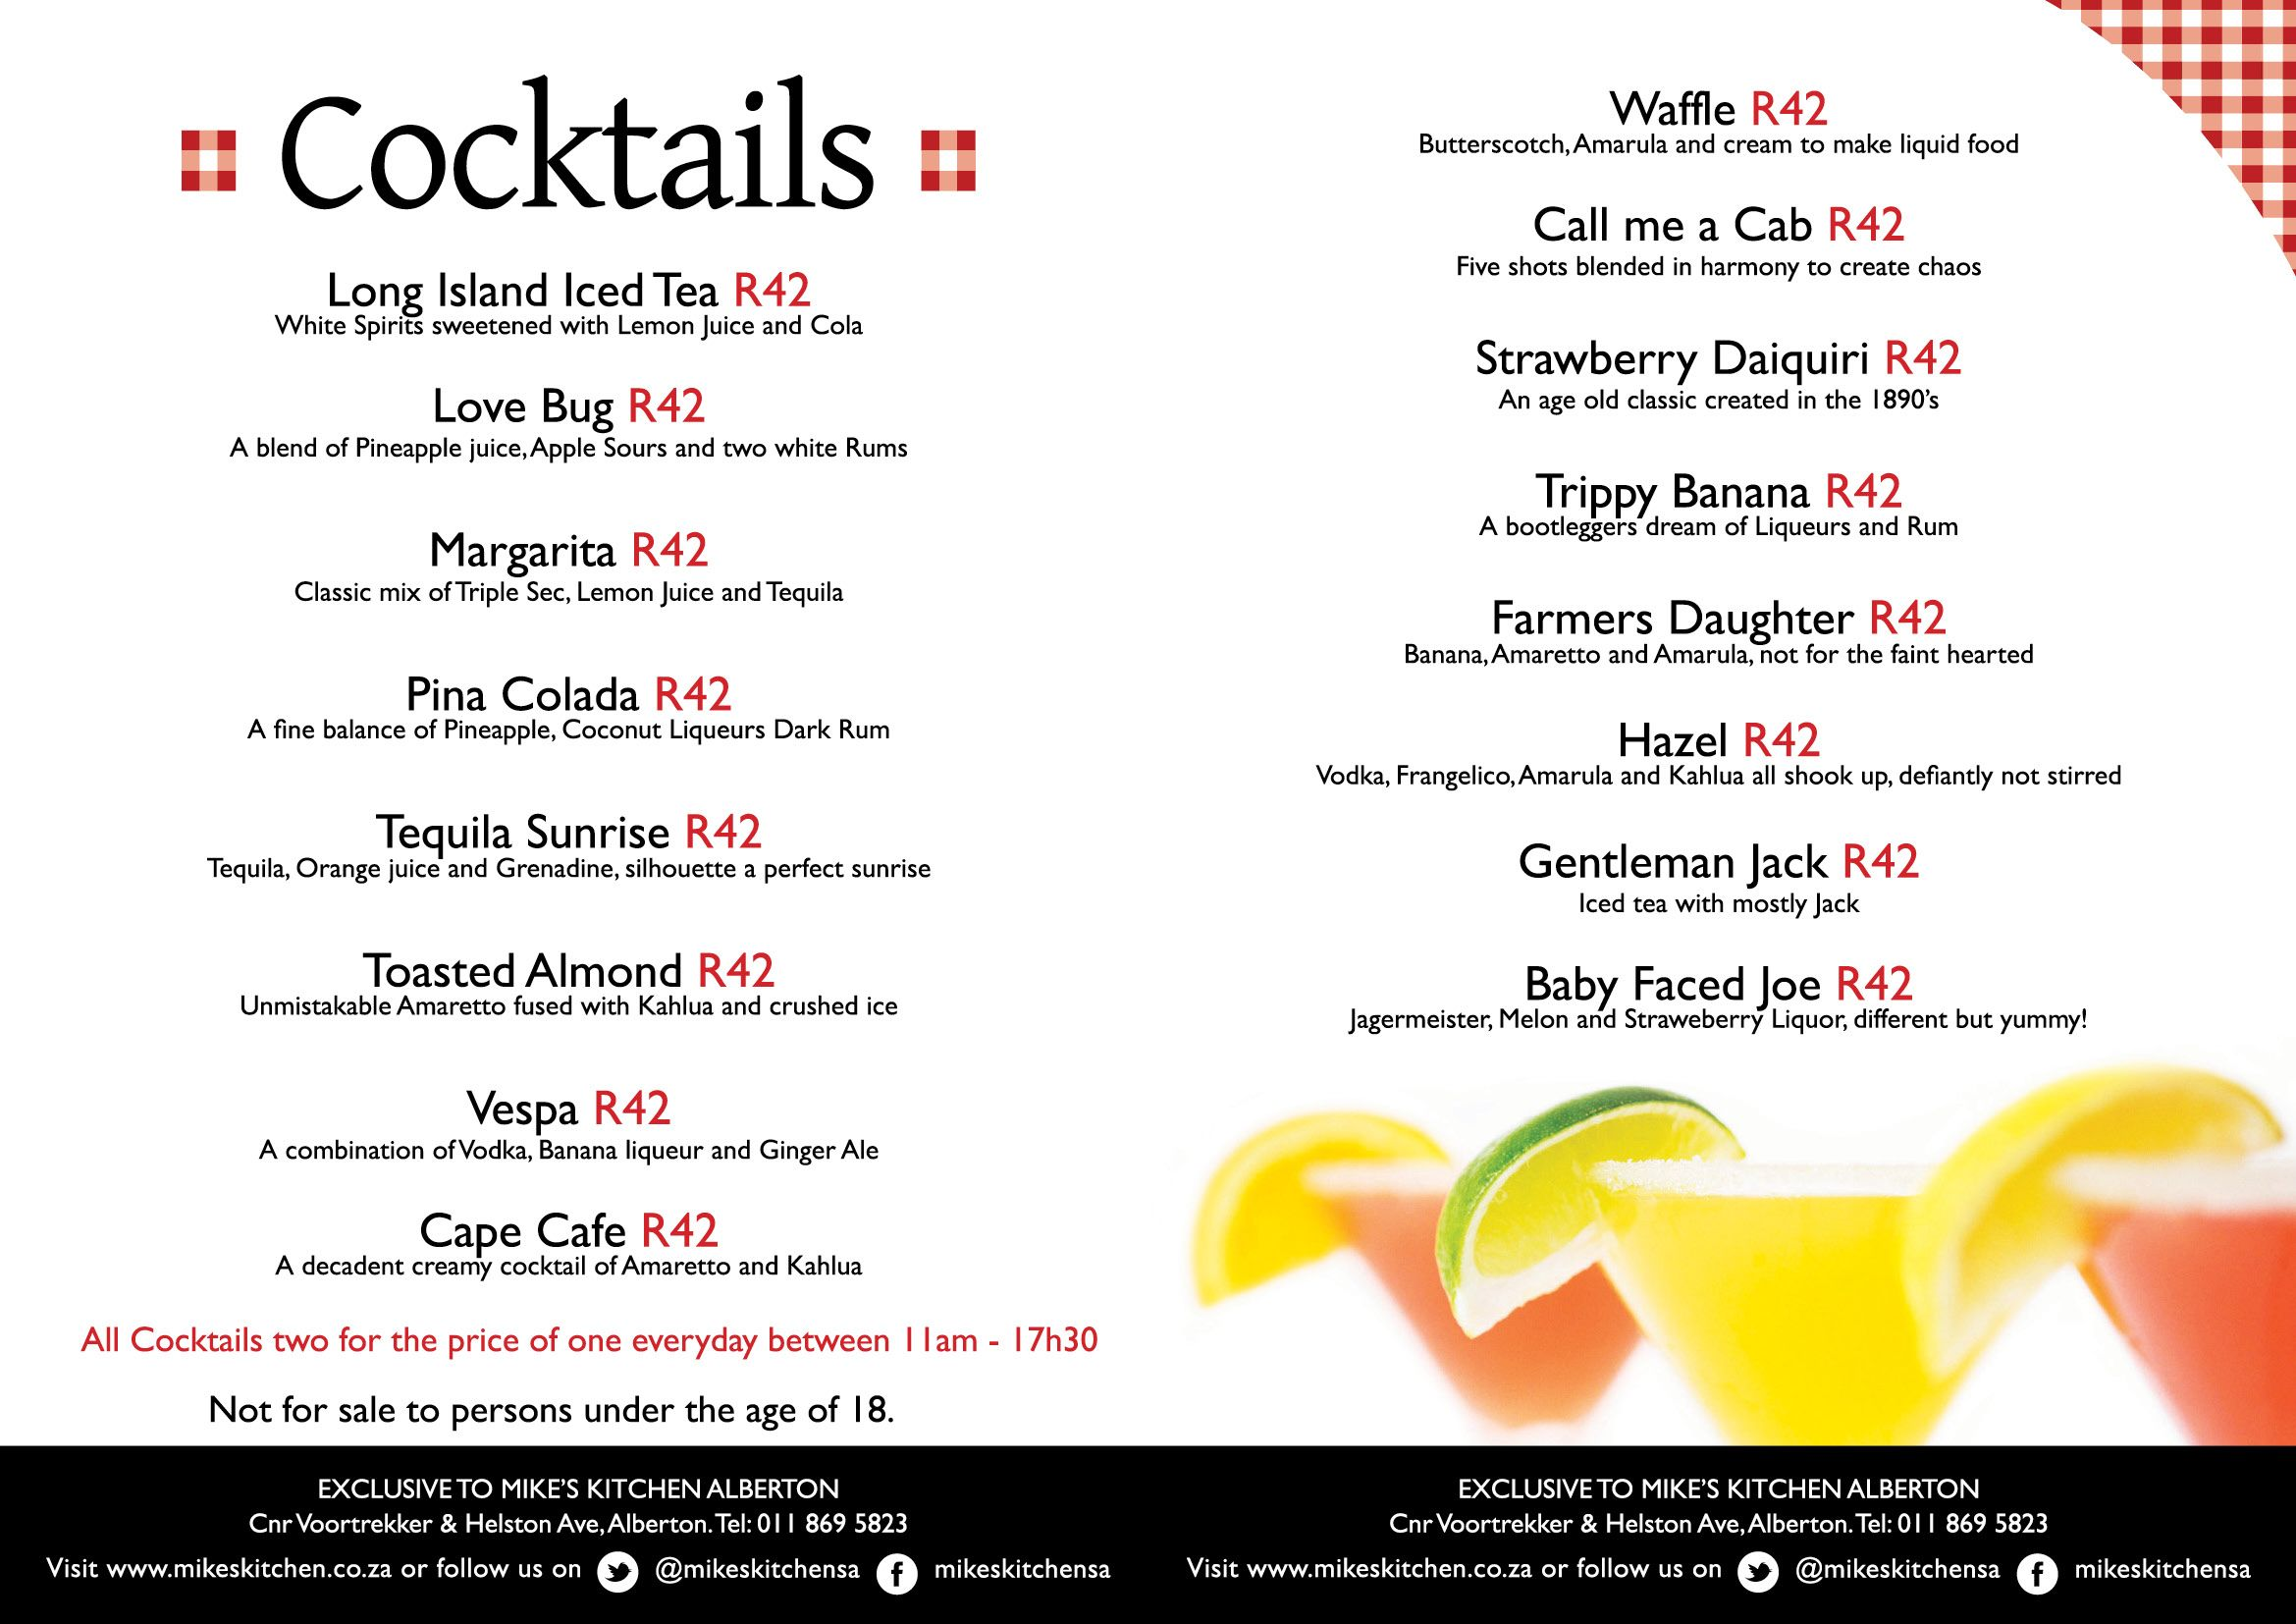 Mikes Kitchen Alberton Cocktail Menu All Cocktails Two For The Price Of One Everyday Between 11am 17h30 Cocktail Menu Cocktails Alberton